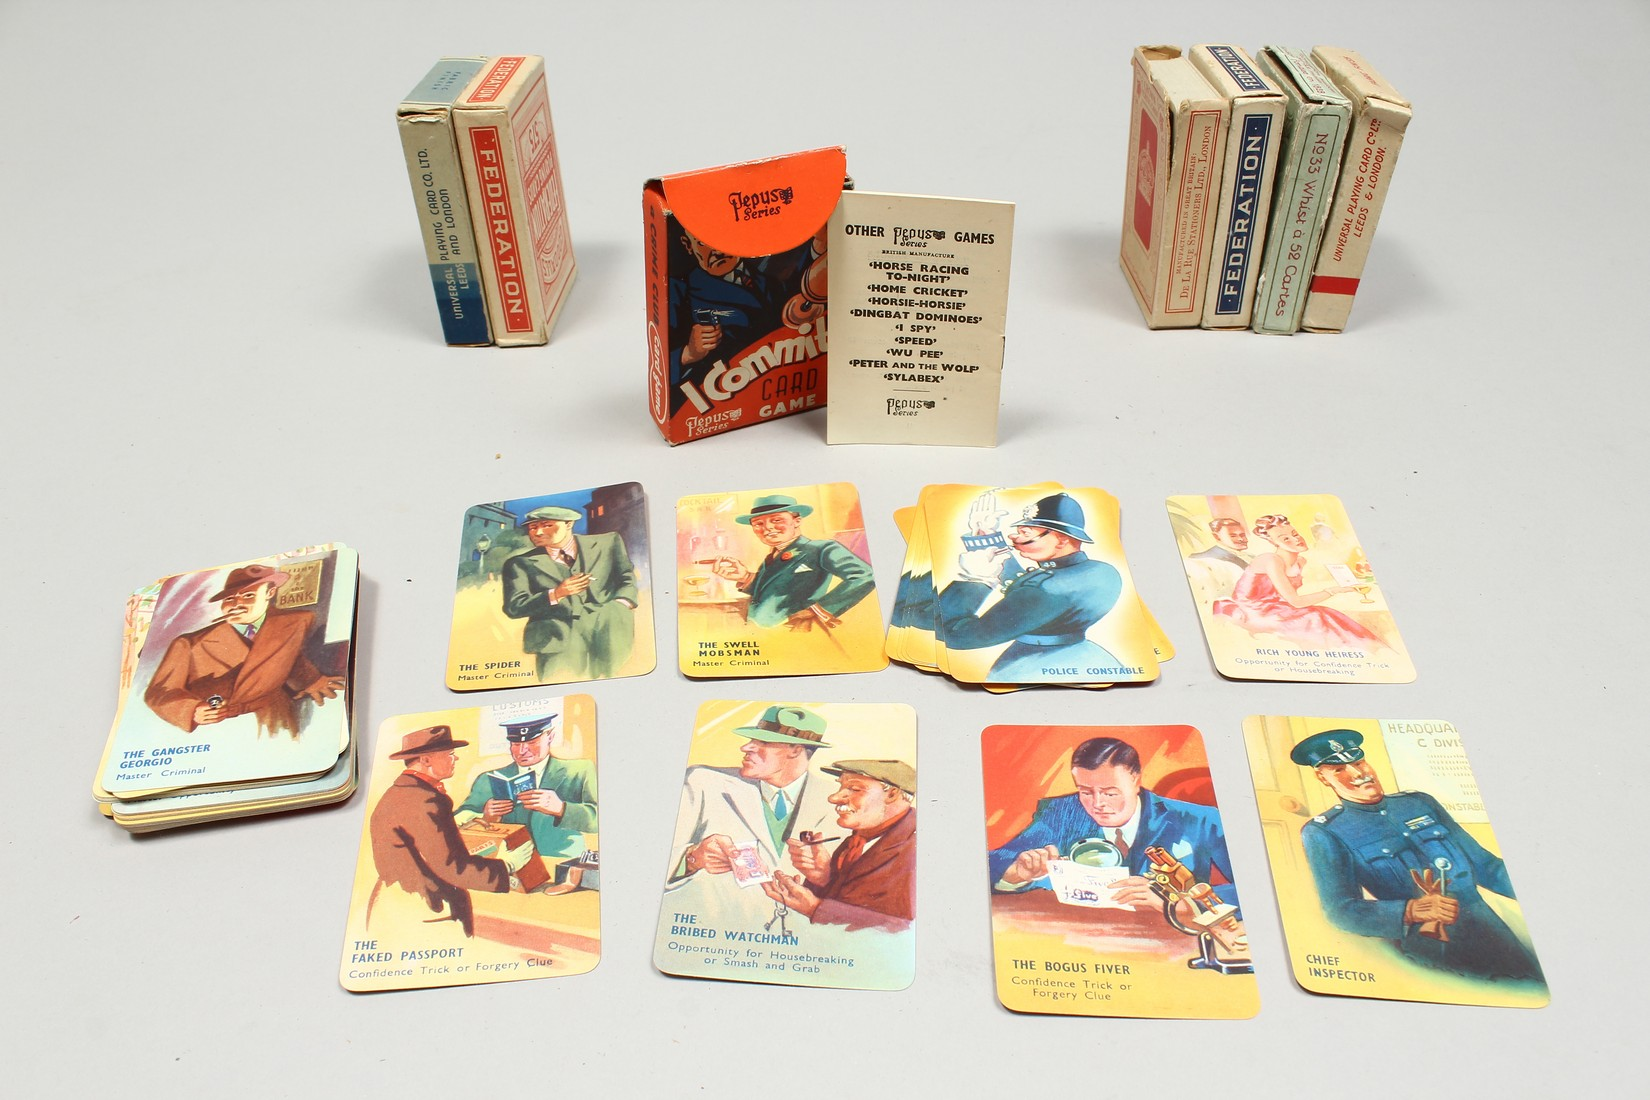 A COLLECTION OF VARIOUS PLAYING CARDS. - Image 13 of 16